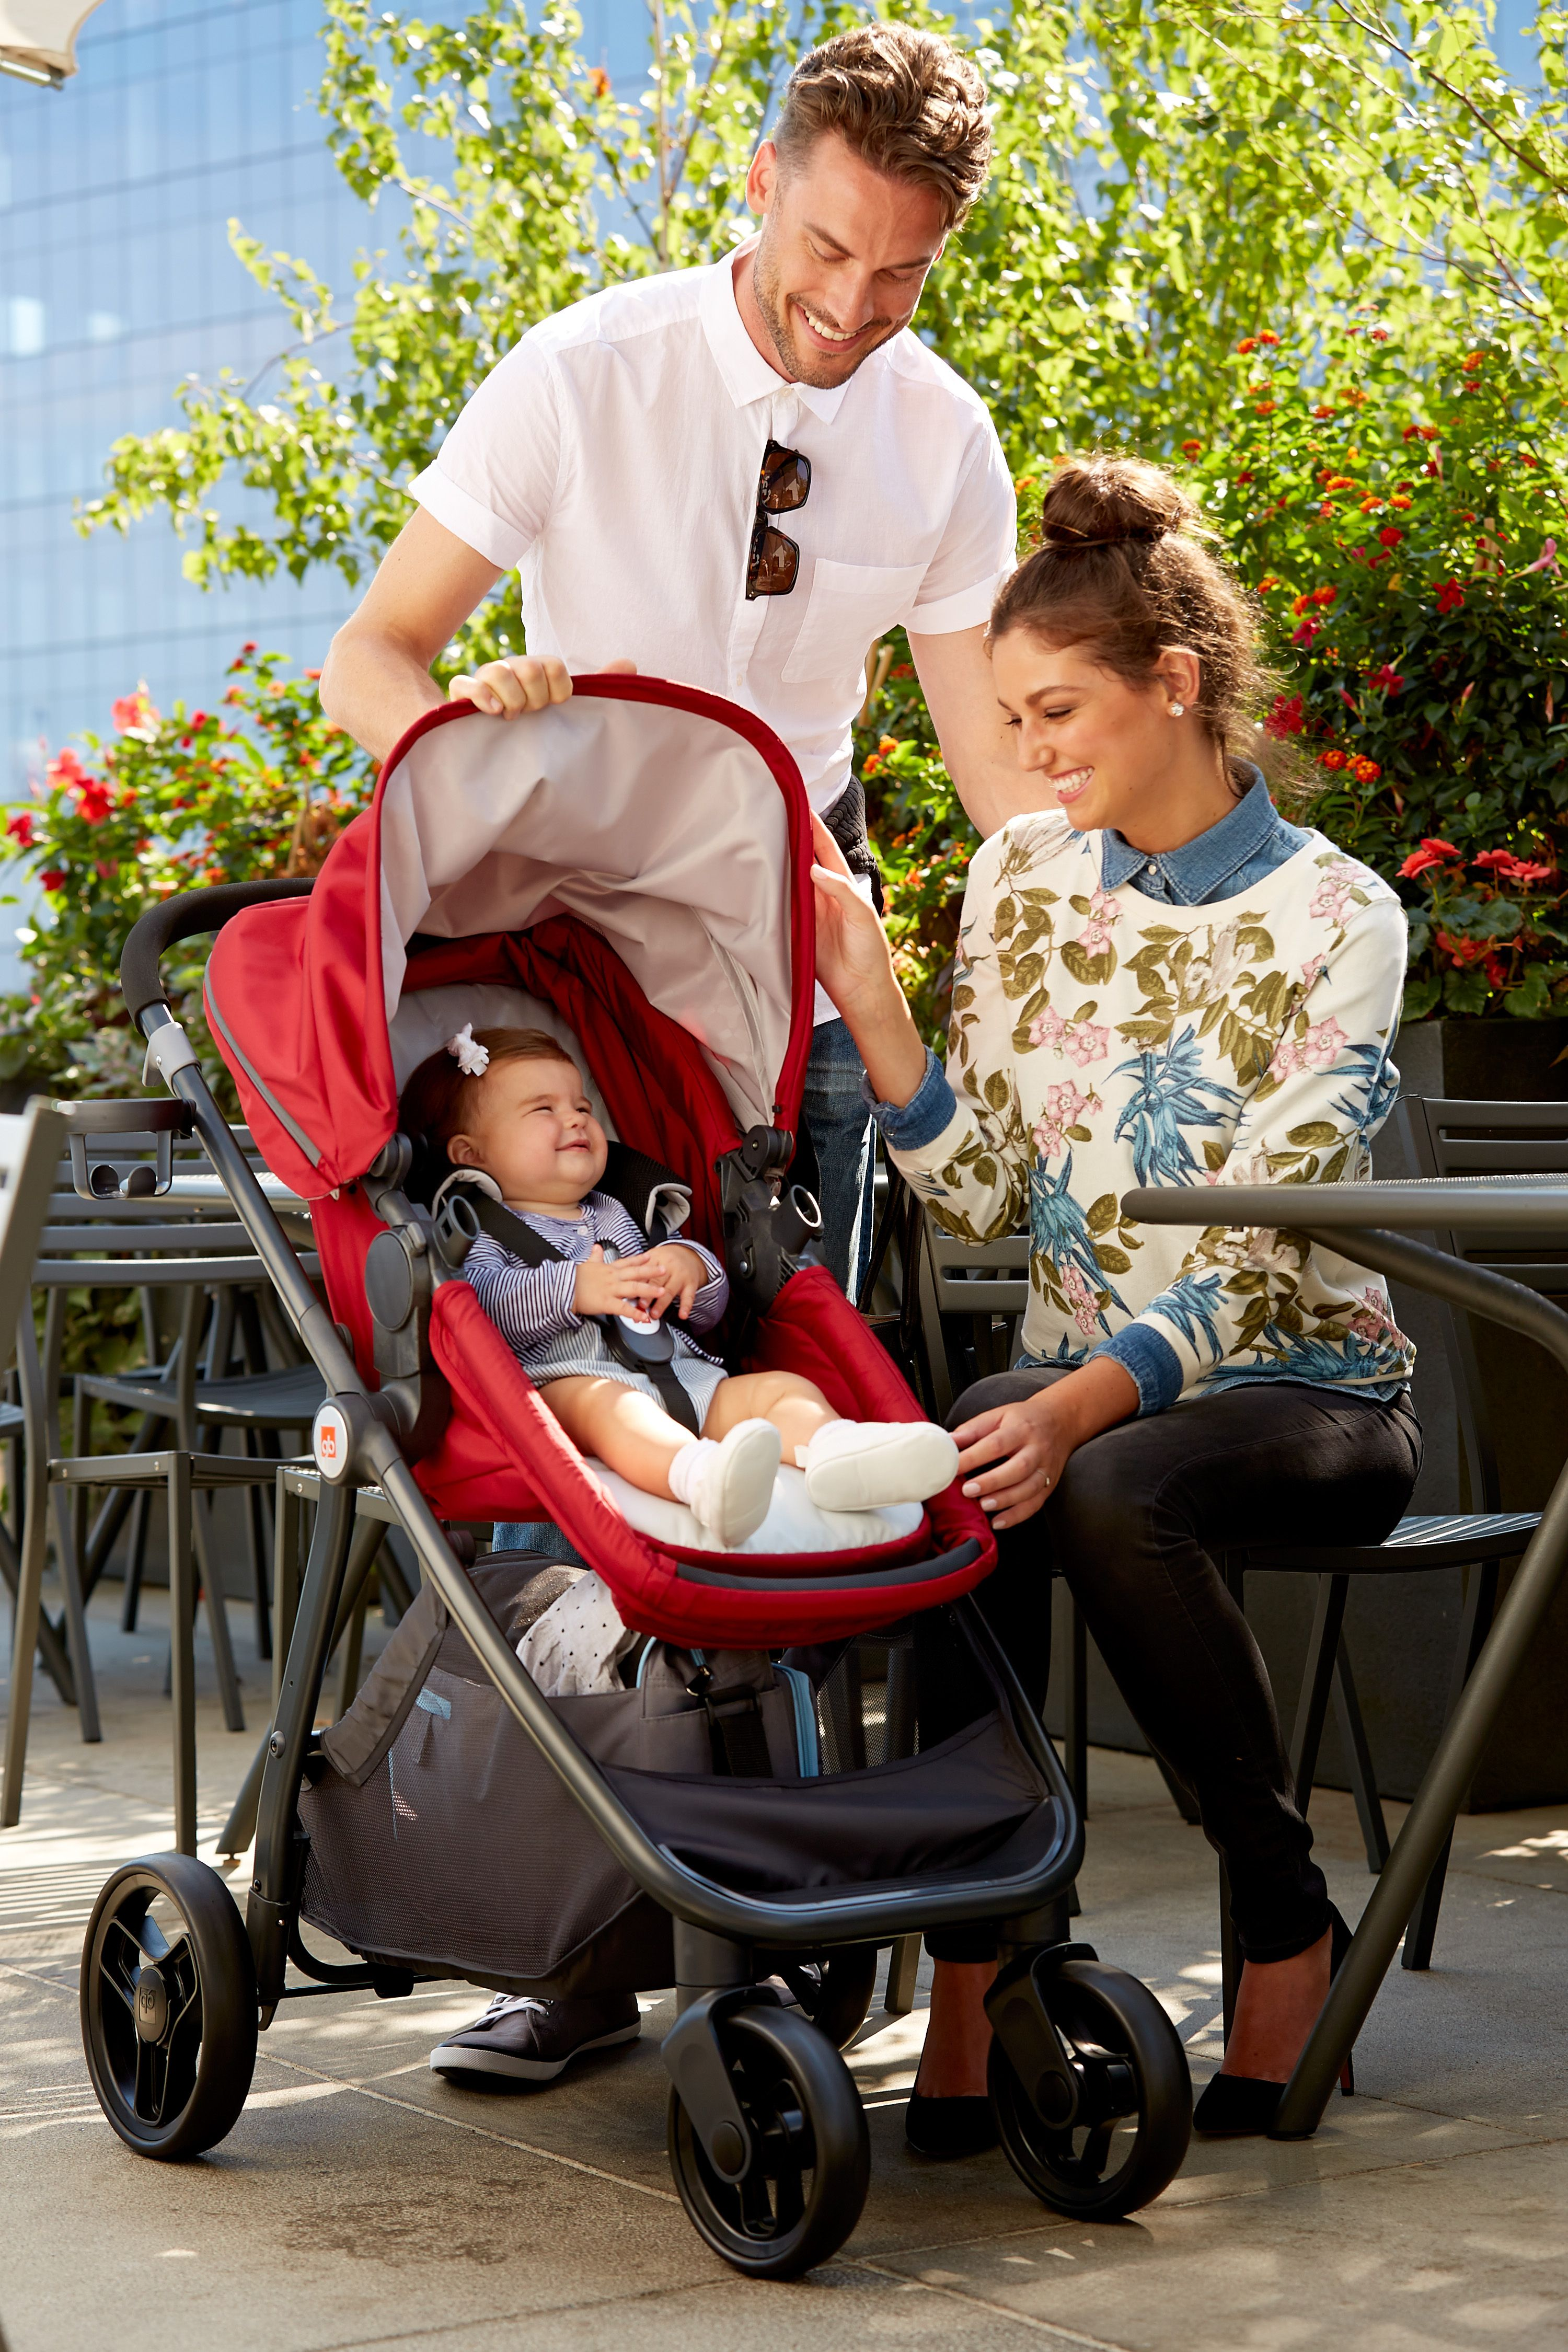 GB Lyfe Pram Travel System. Available now at Babies R Us